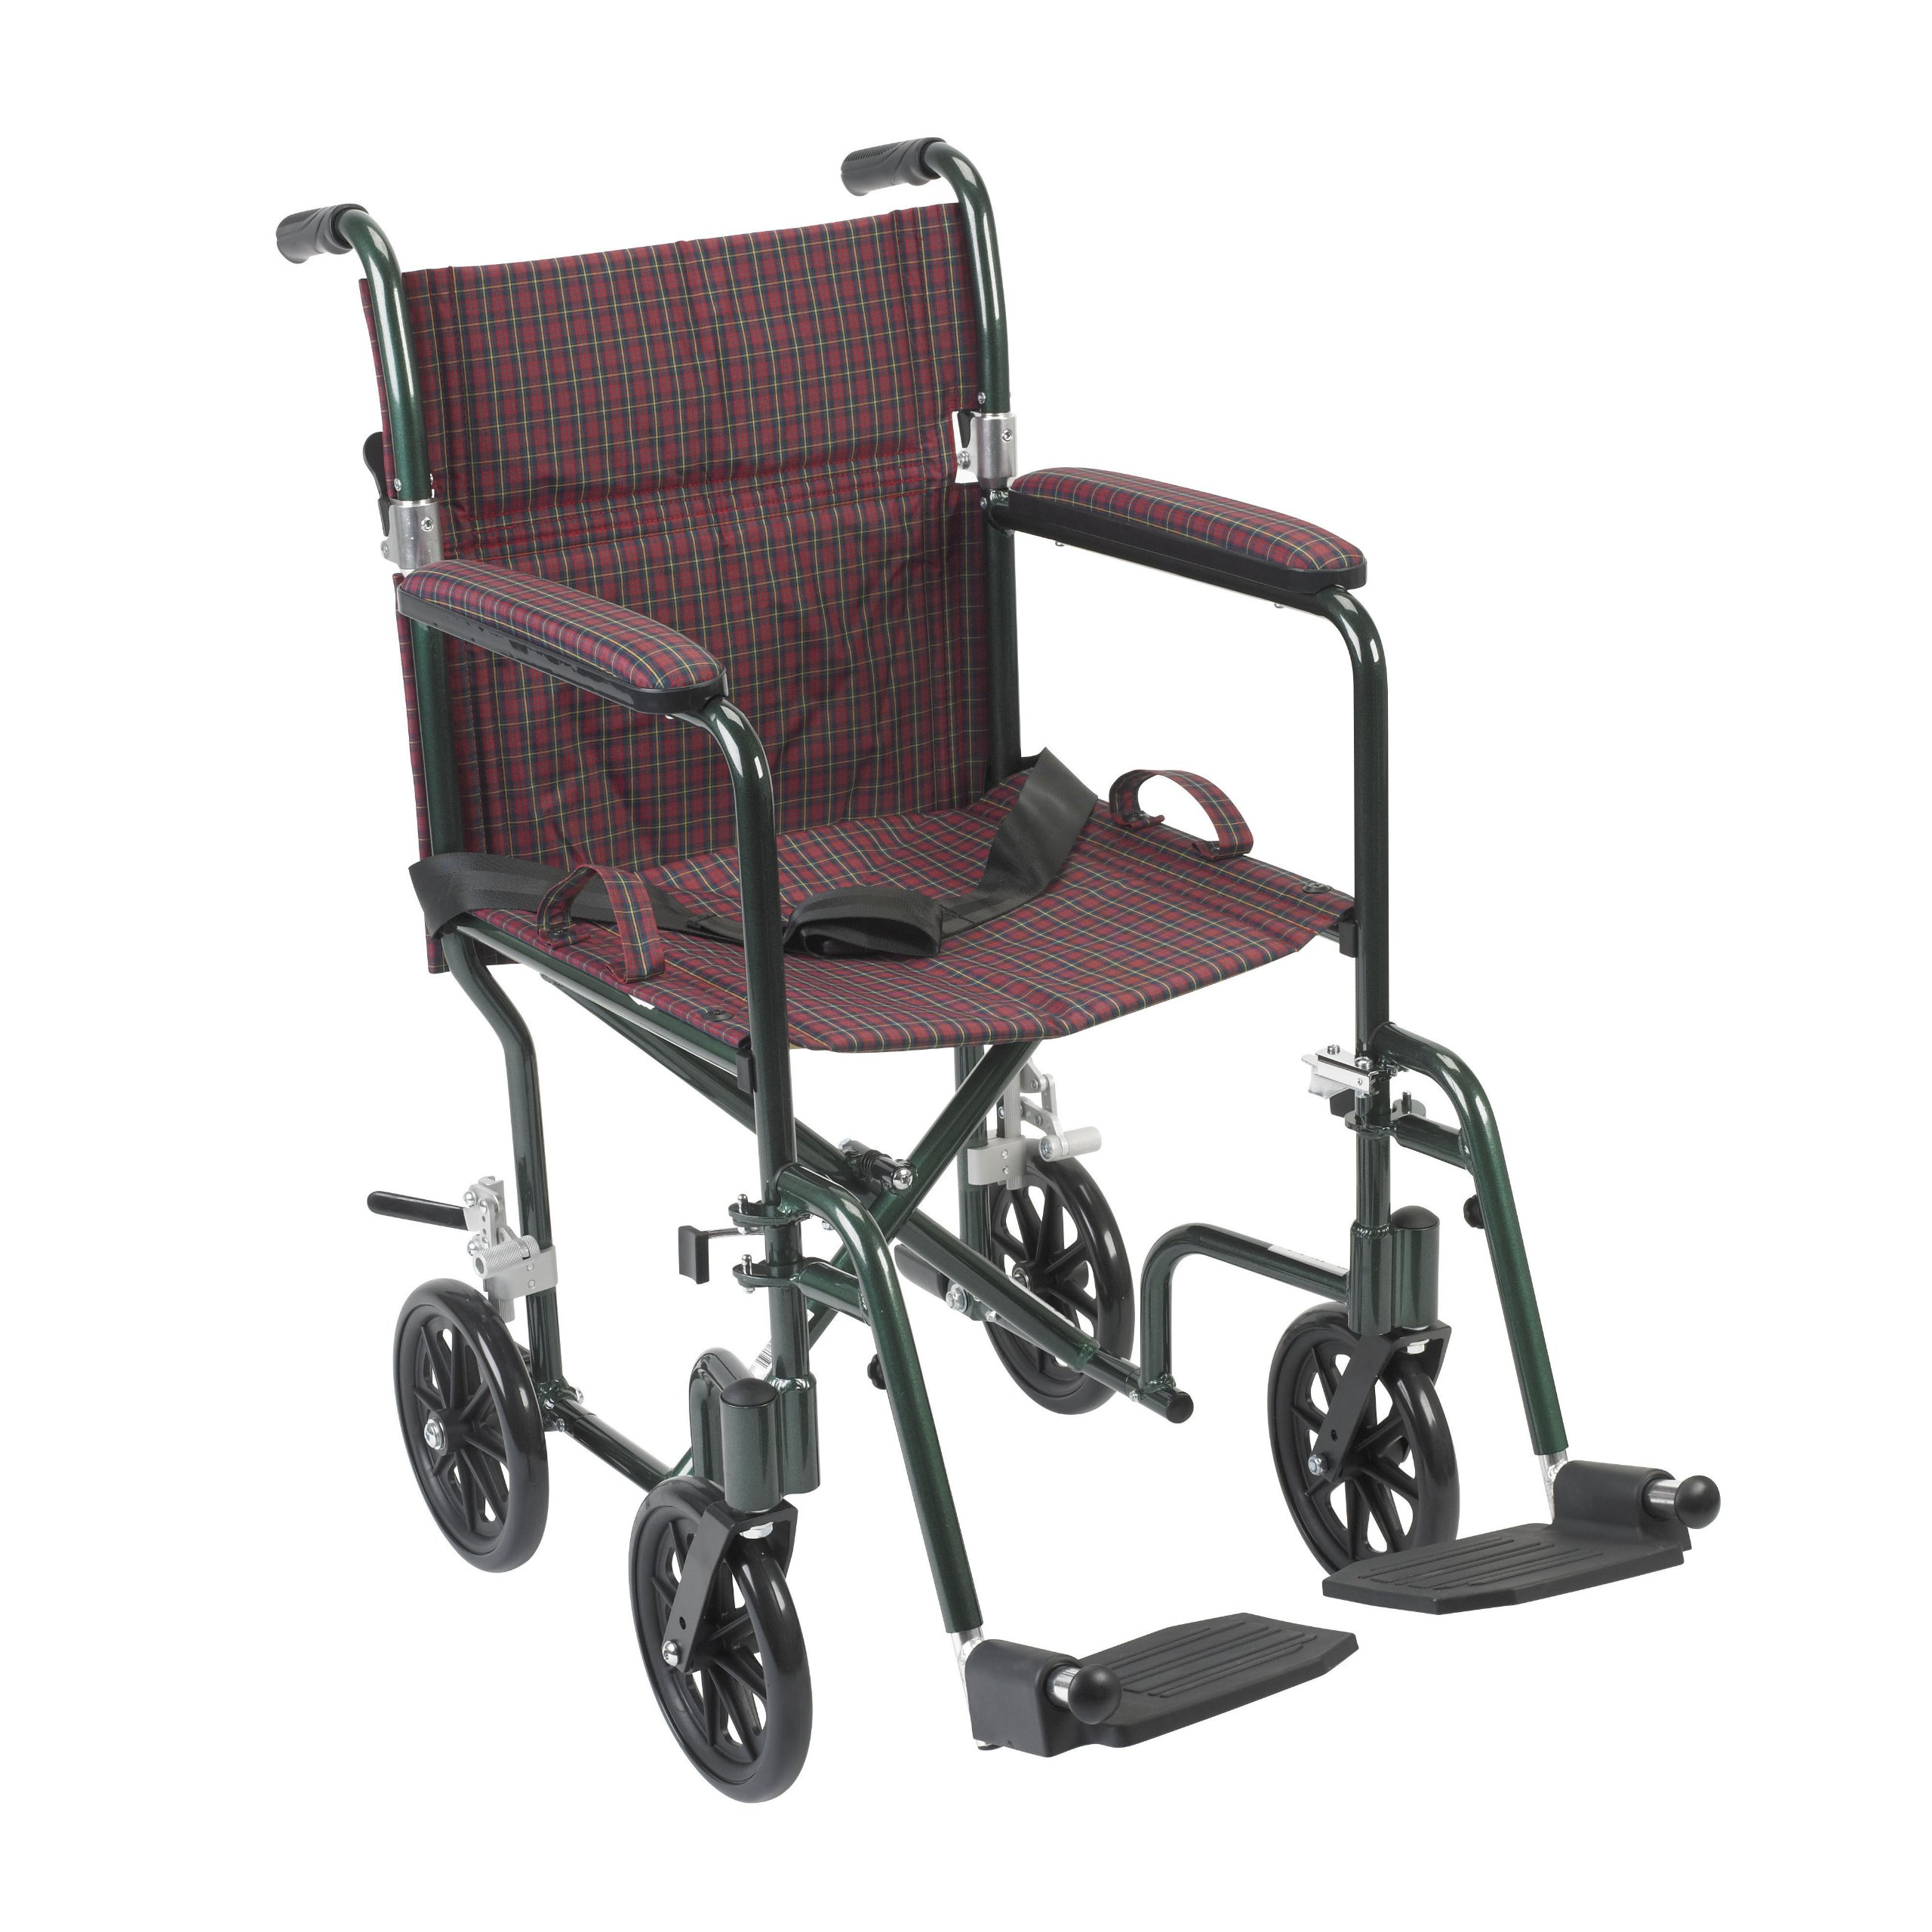 Drive Medical FW19BG Fly-Weight Transport Chair, 19 Inch, Burgundy Green